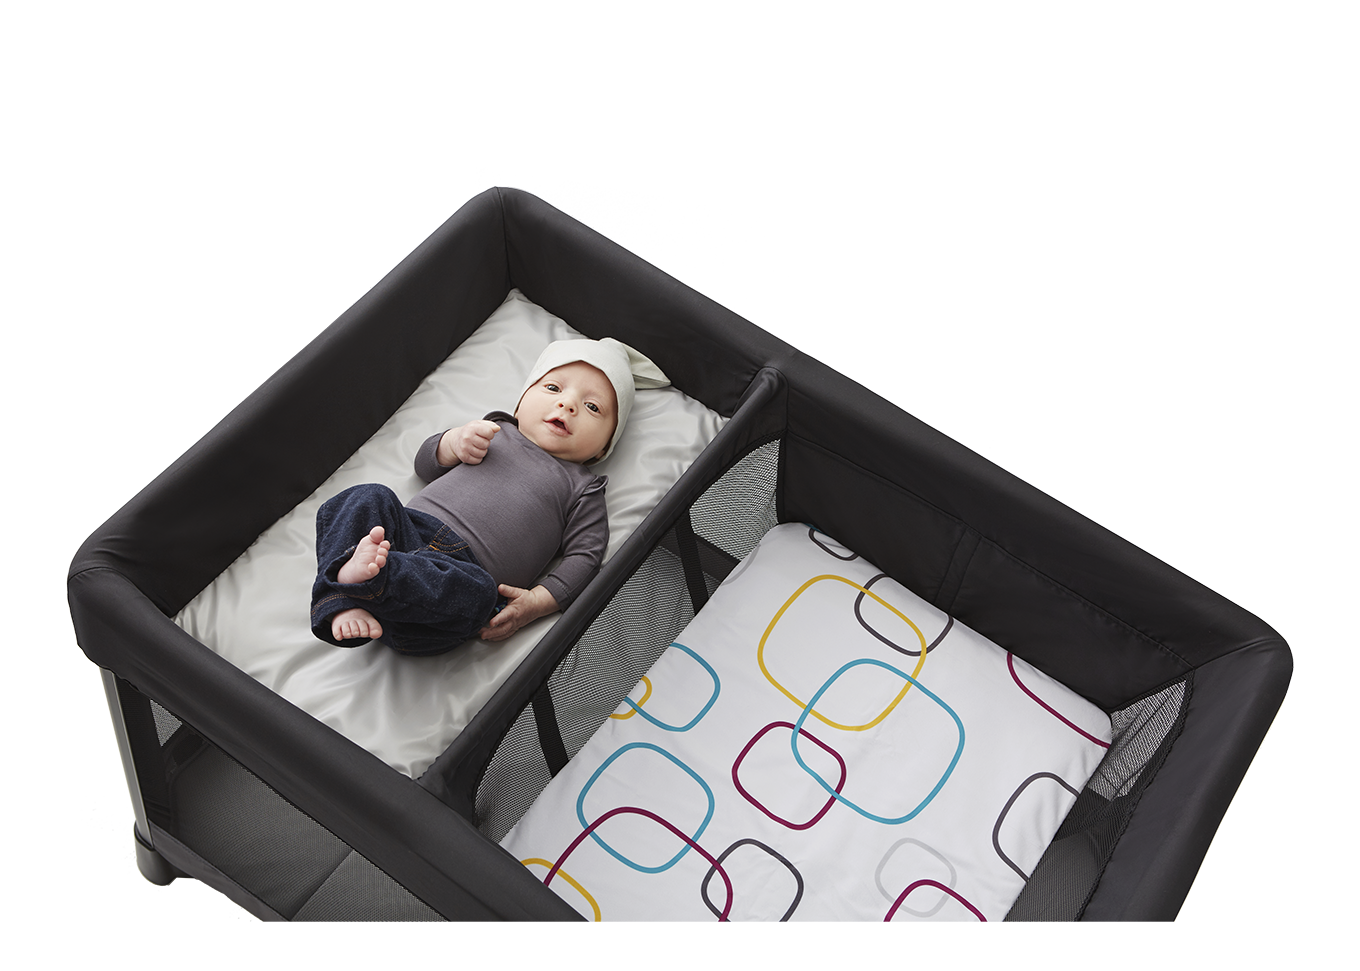 baby in removable bassinet next to changer